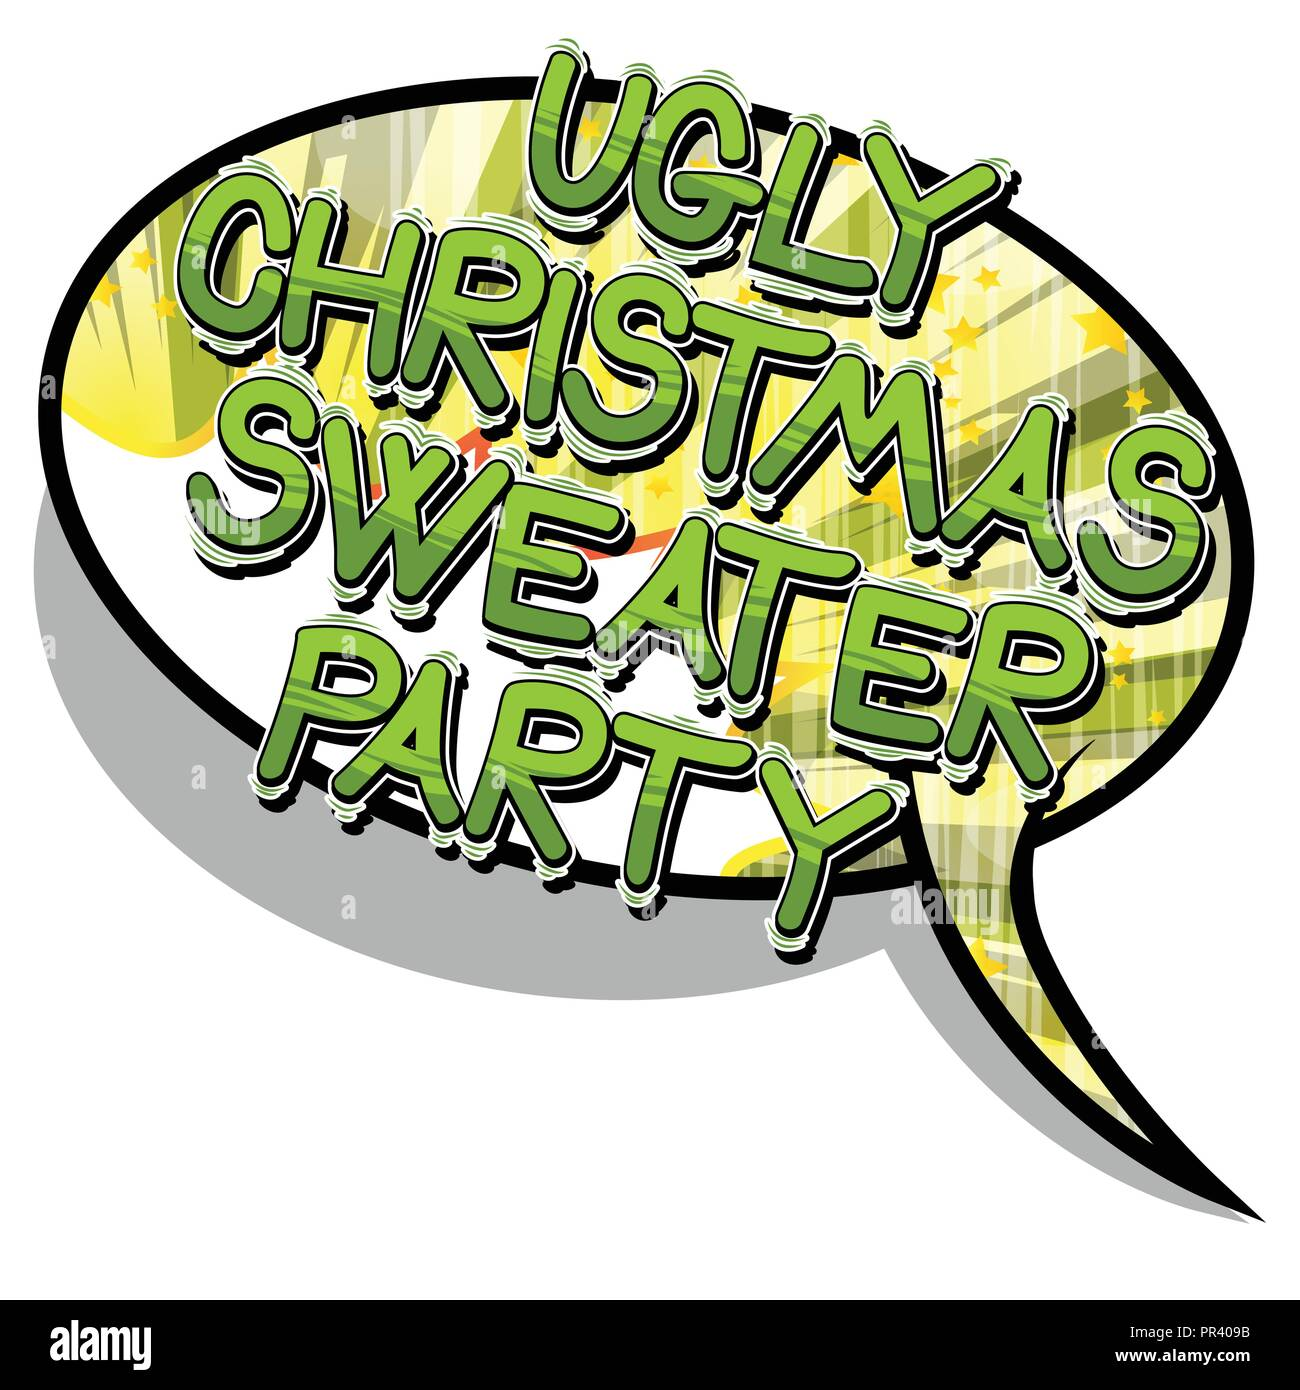 Ugly Christmas Sweater Cartoon.Ugly Christmas Sweater Party Vector Illustrated Comic Book